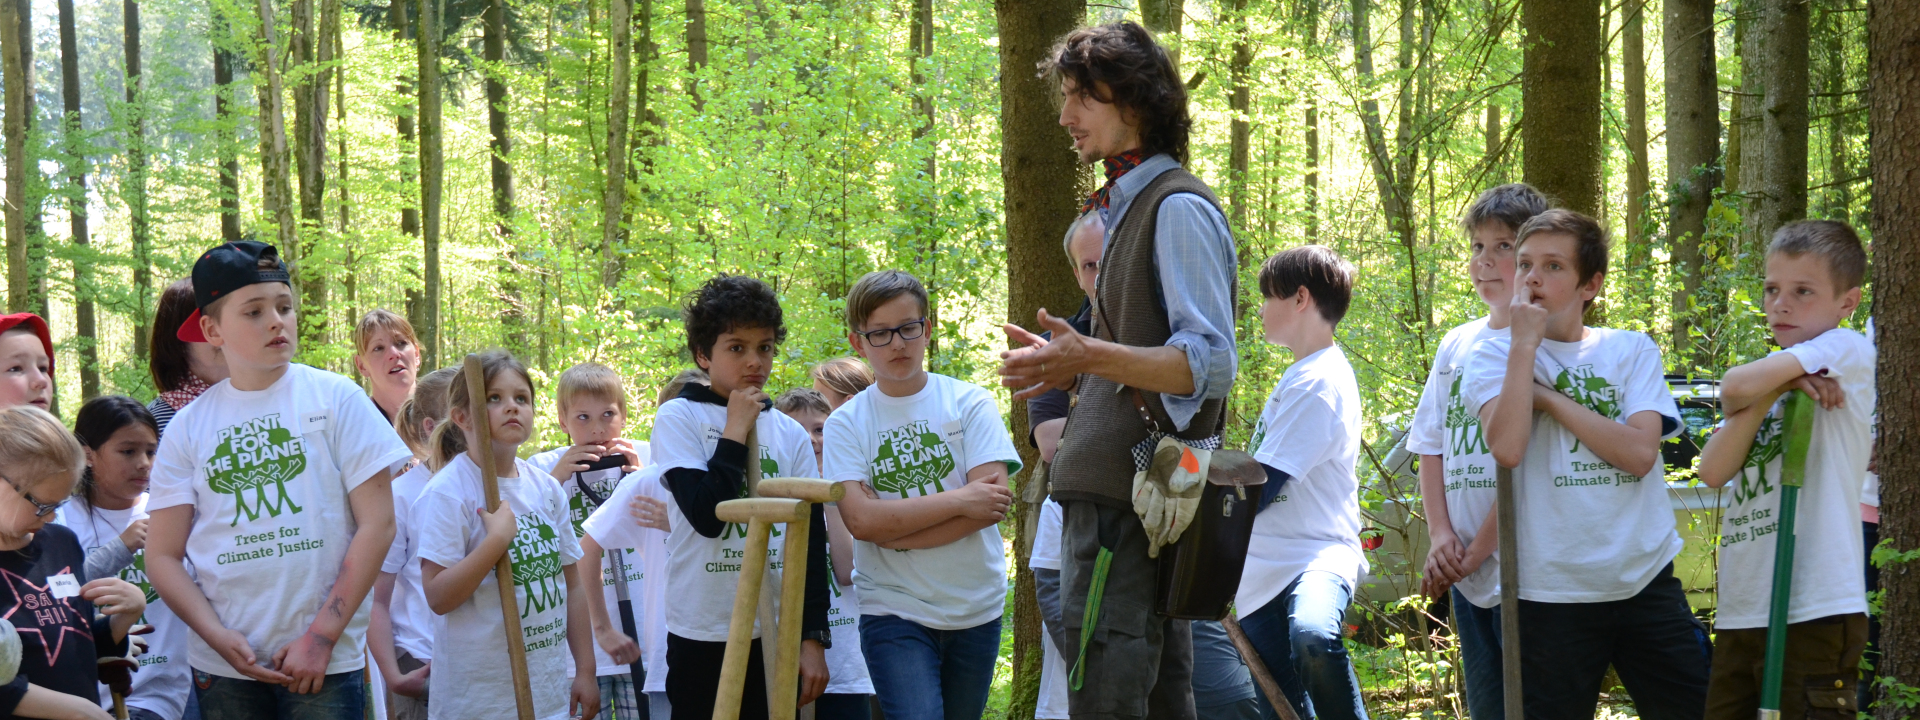 Plant for the Planet in Kempten